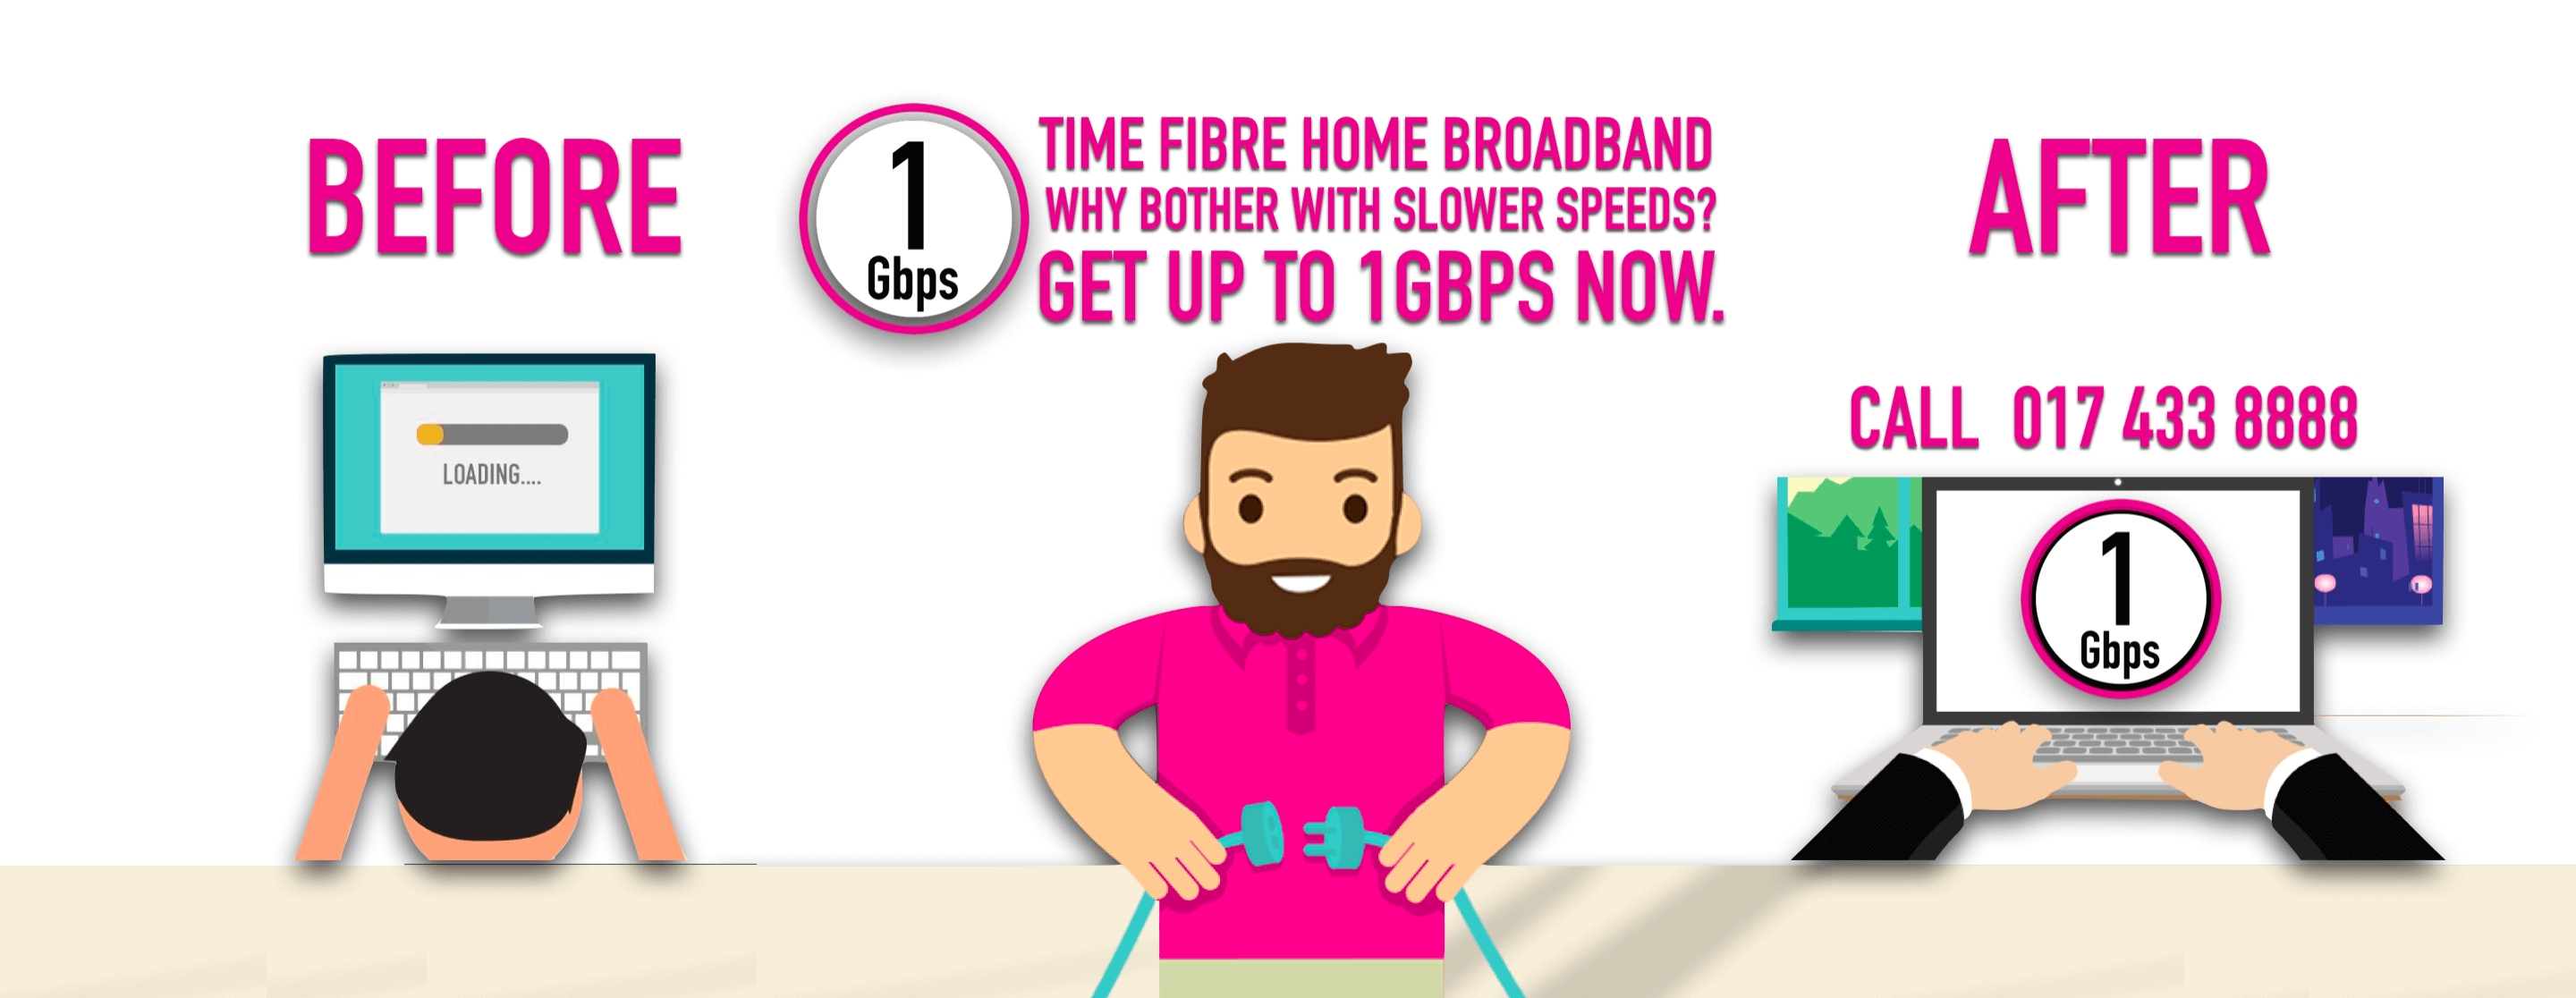 time broadband wifi router